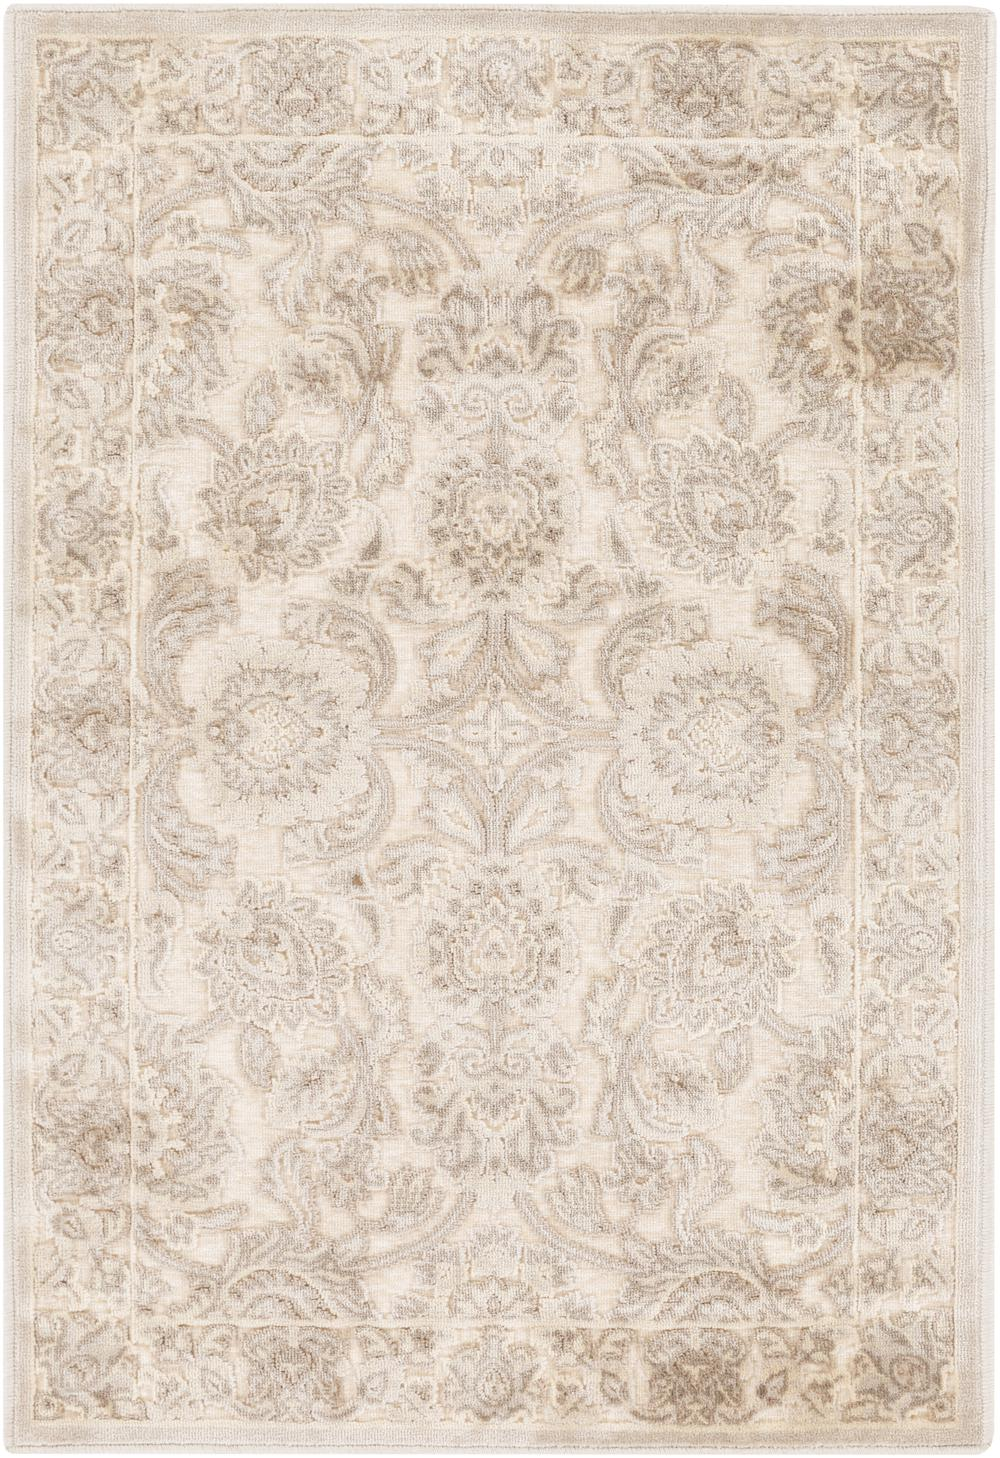 Surya Basilica Bsl7212 White Area Rug Free Shipping